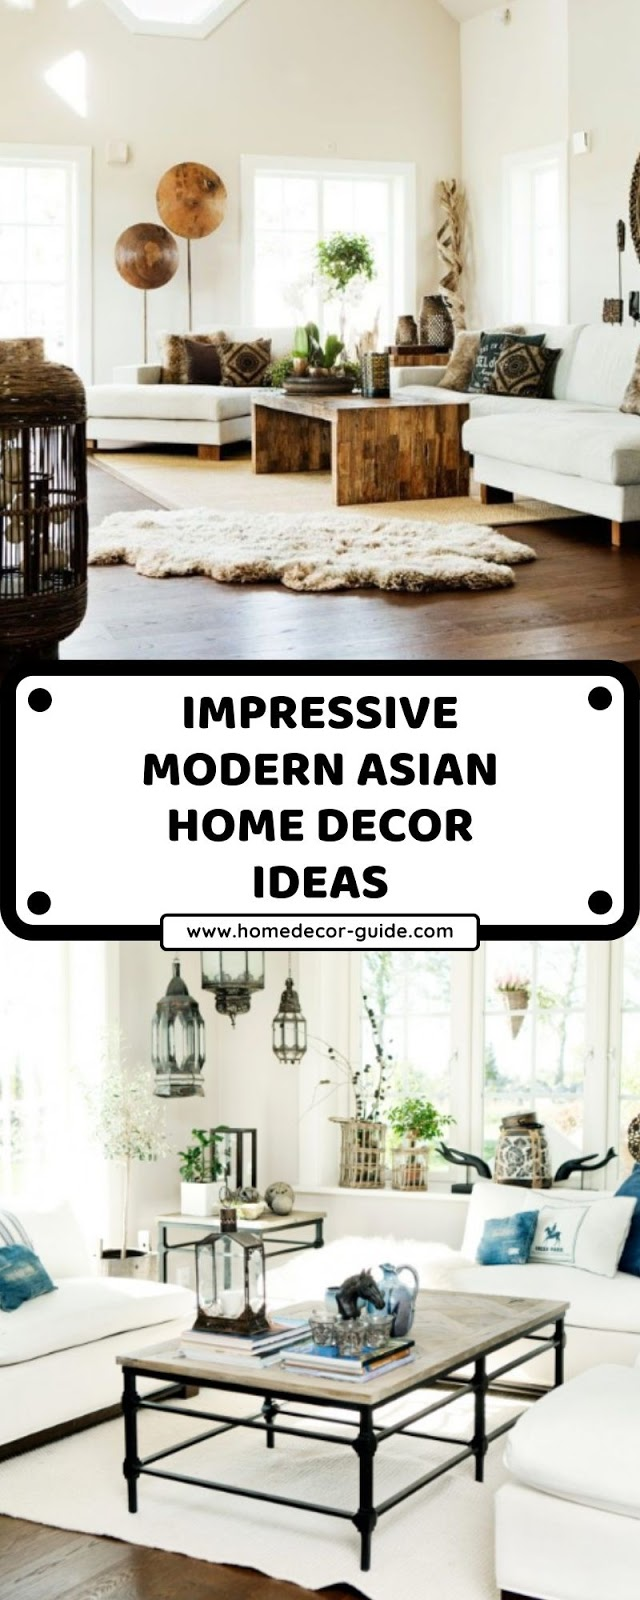 IMPRESSIVE MODERN ASIAN HOME DECOR IDEAS